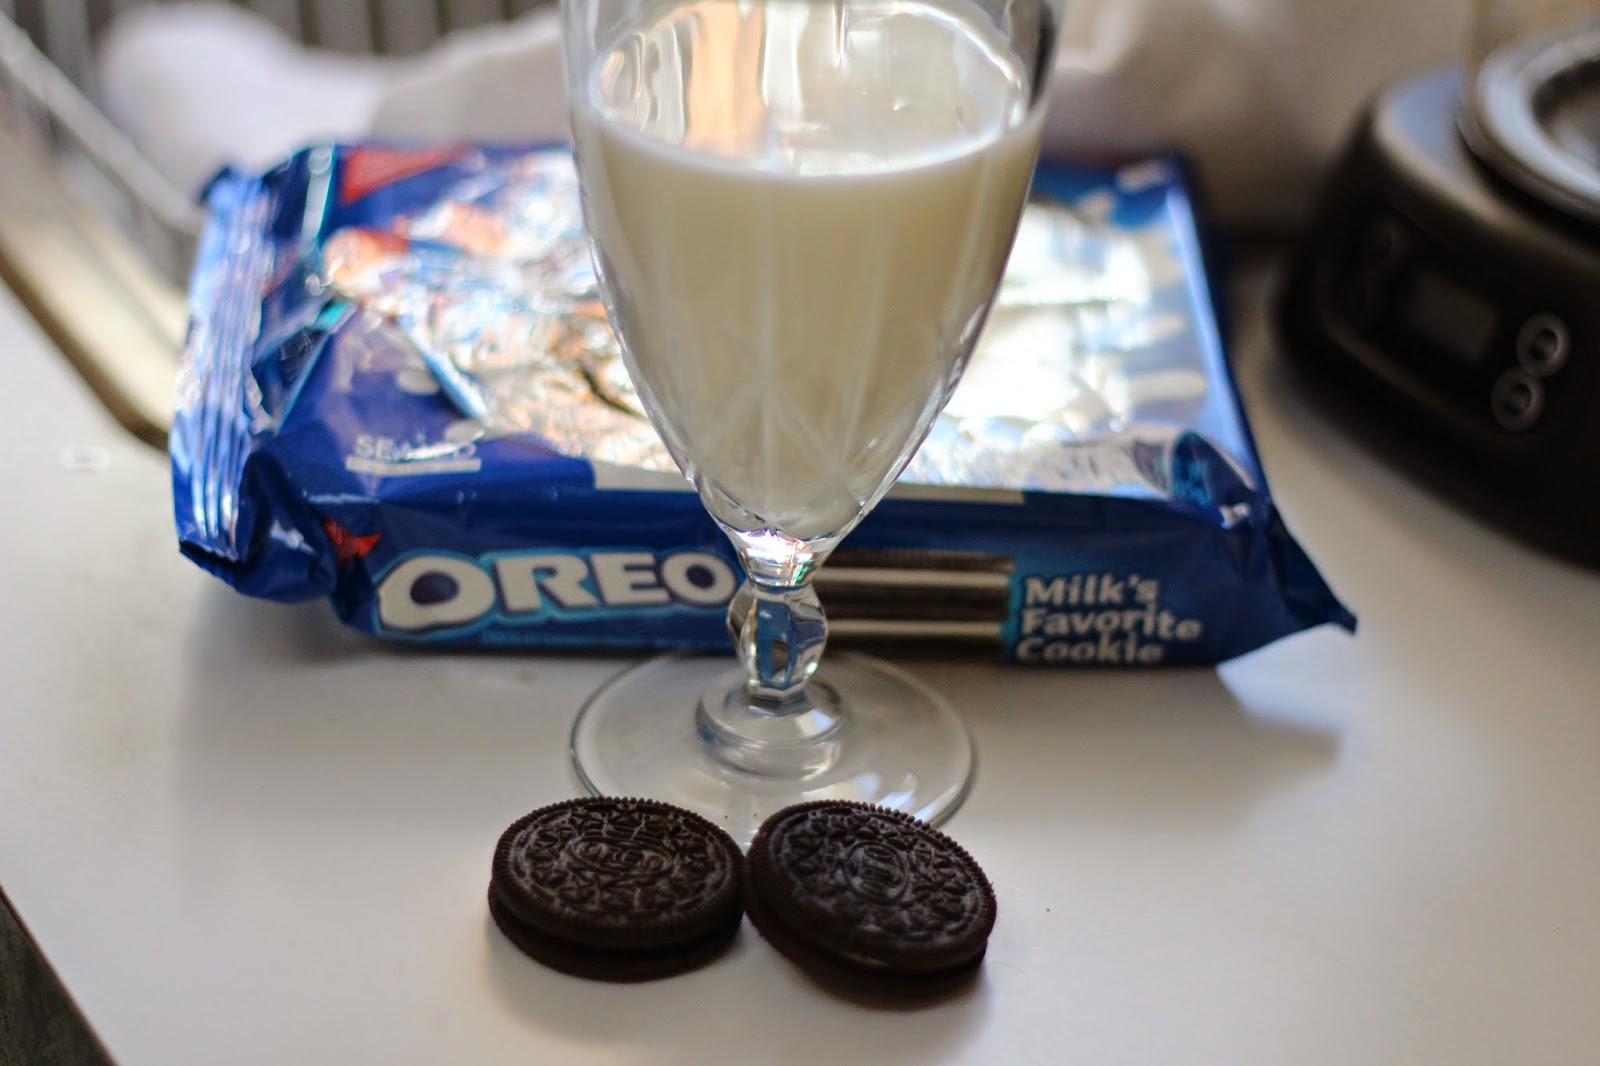 The best day ever Oreos and milk